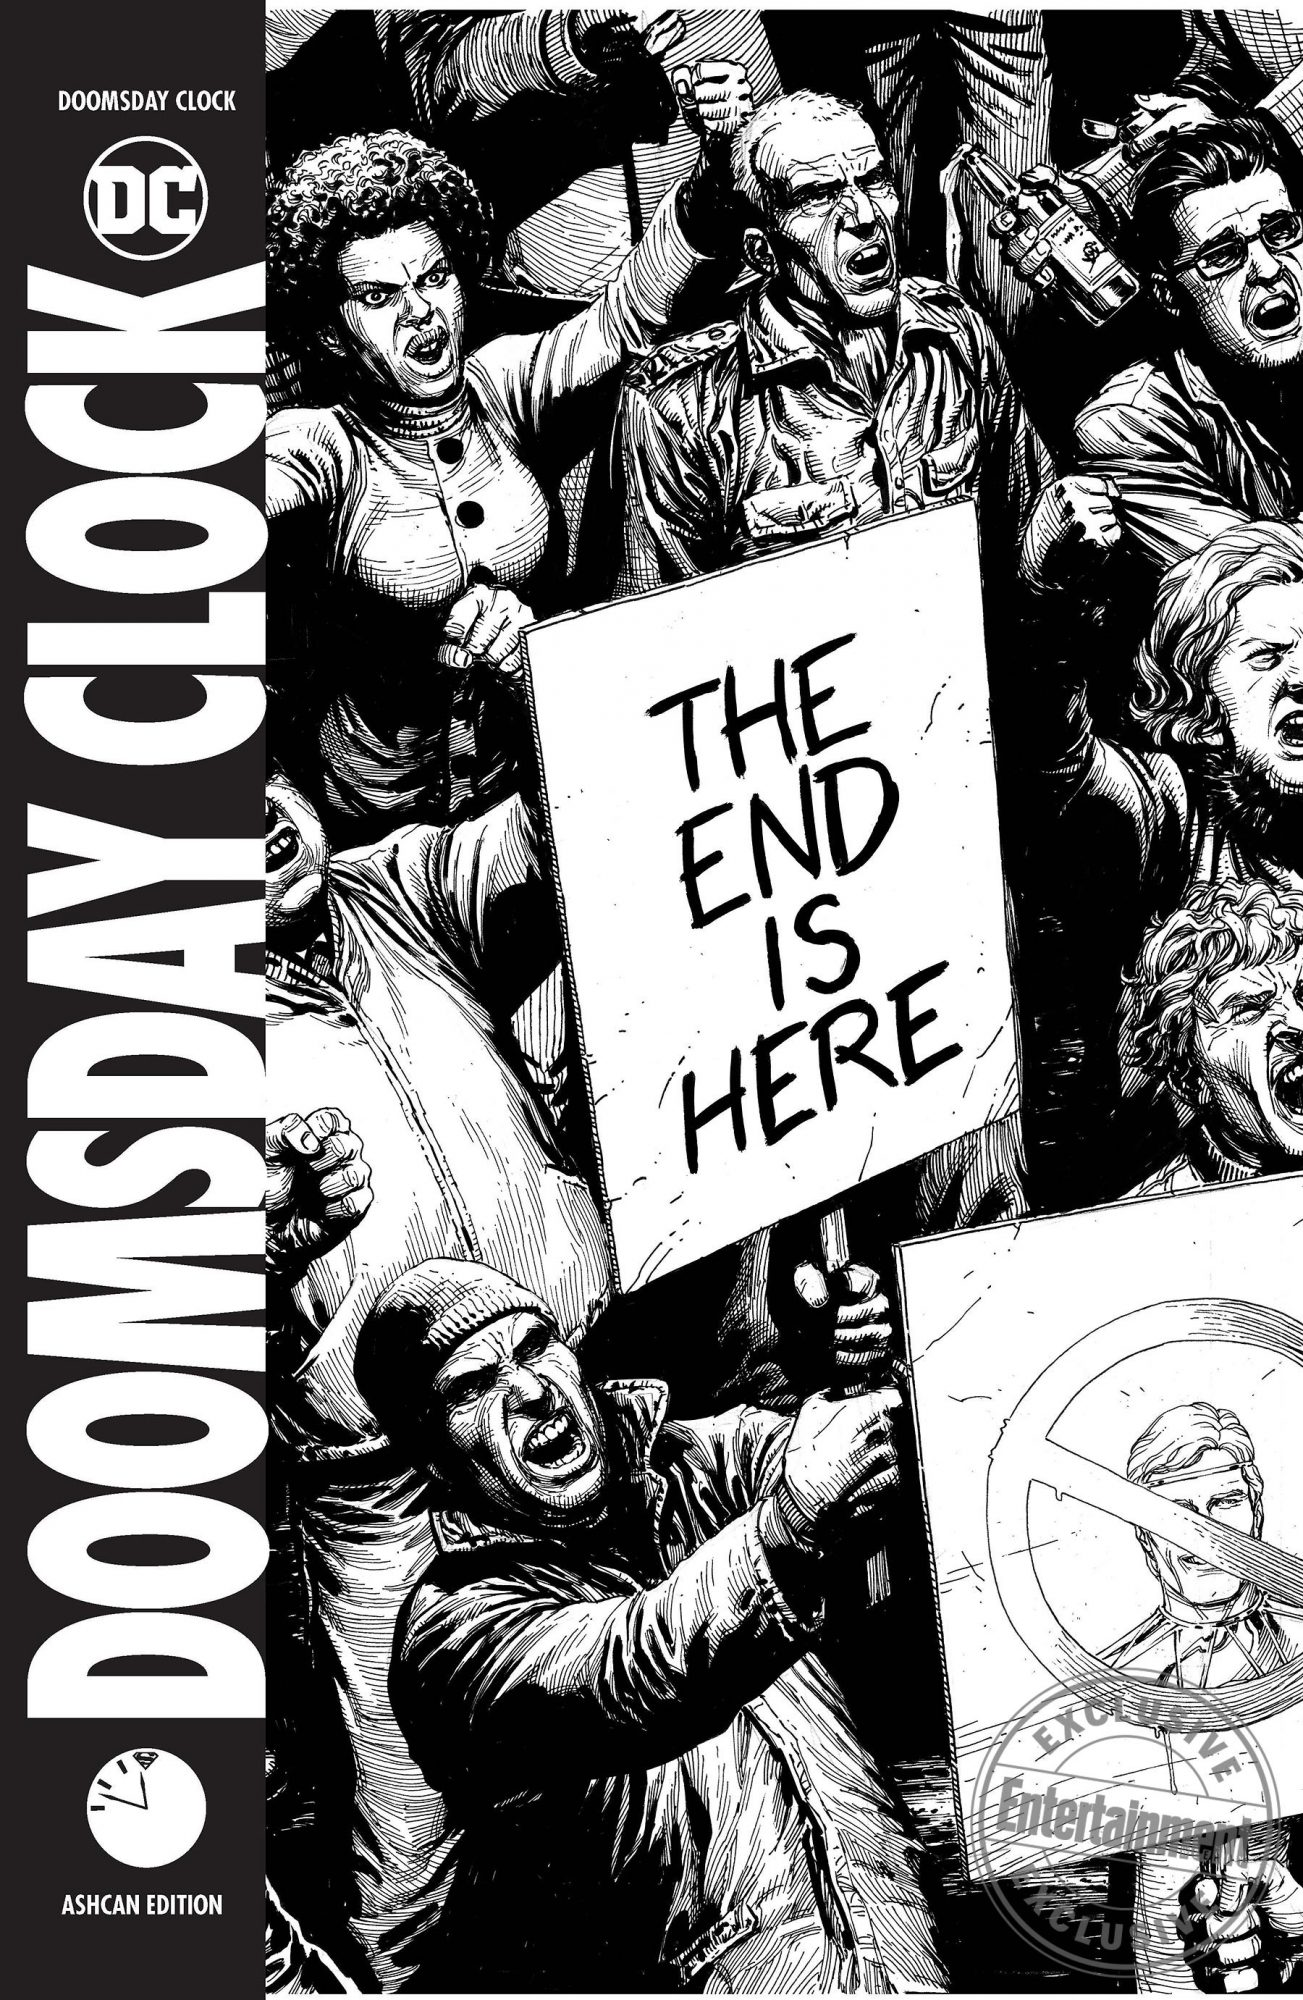 Doomsday Clock CR: DC Entertainment